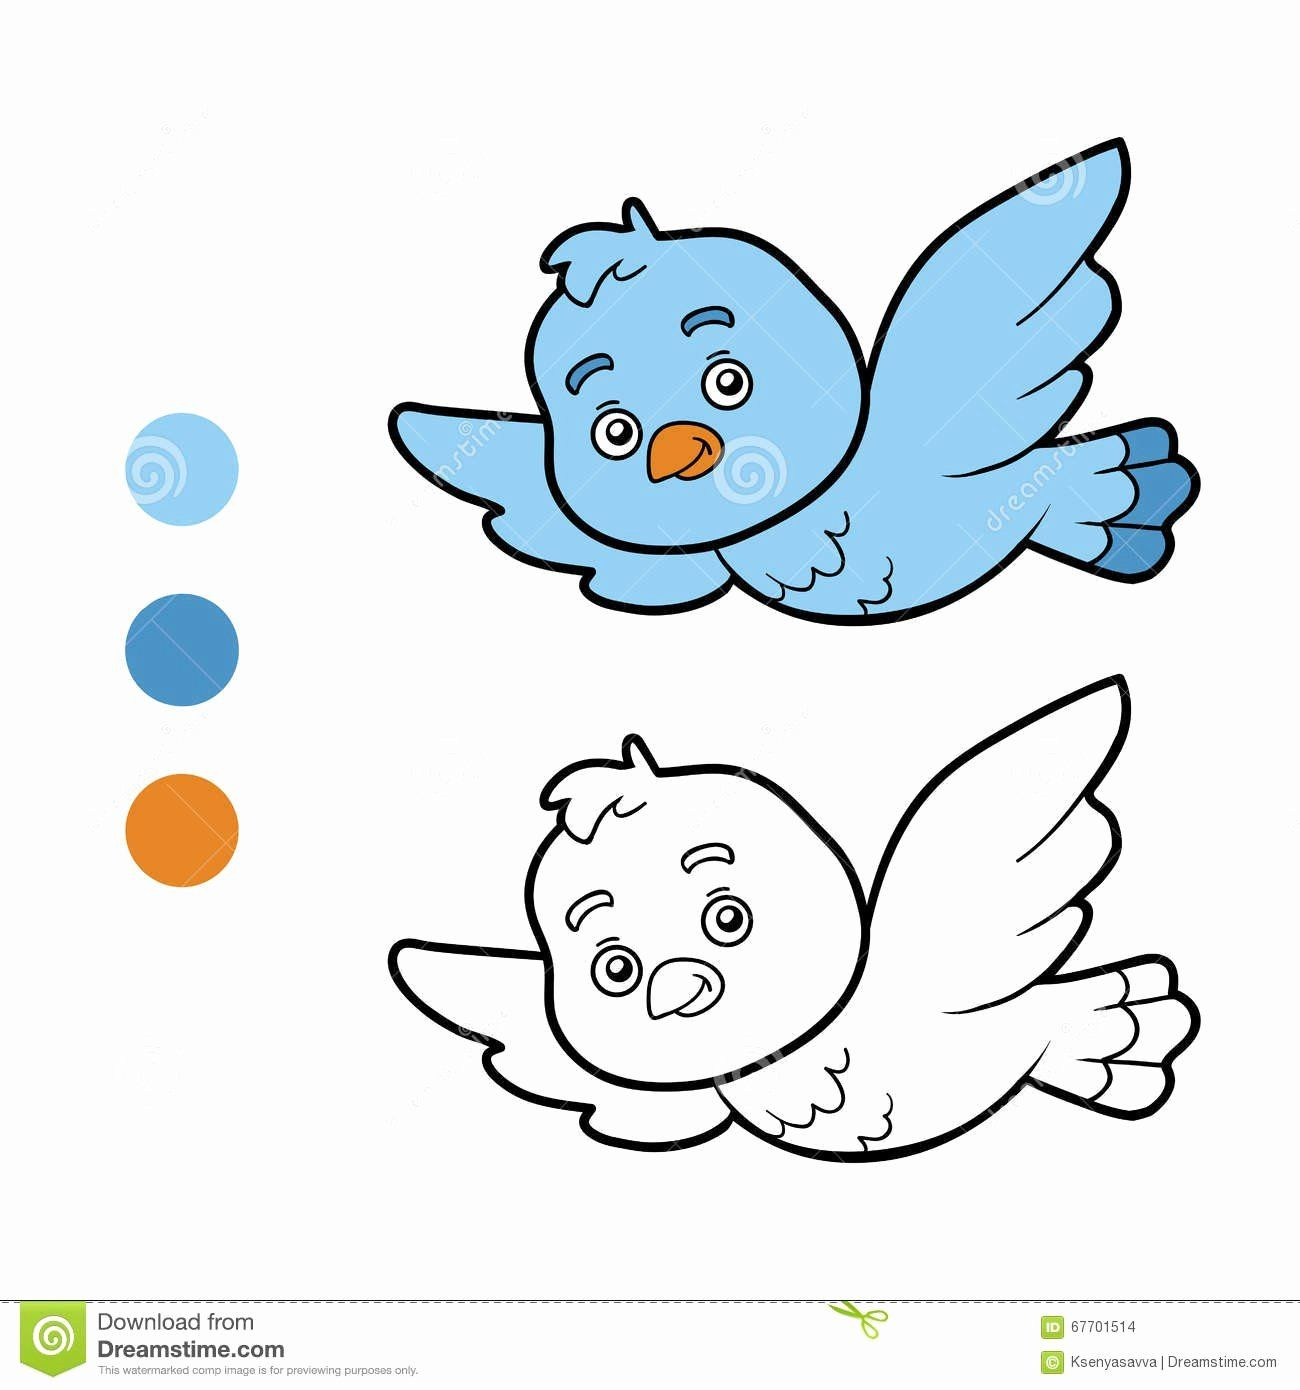 Coloring Cartoon Youtube Awesome Baby Cartoon Characters Coloring Pages Luxury Baby Bugs In 2020 Cartoons Youtube Cartoon Coloring Pages Baby Cartoon Characters